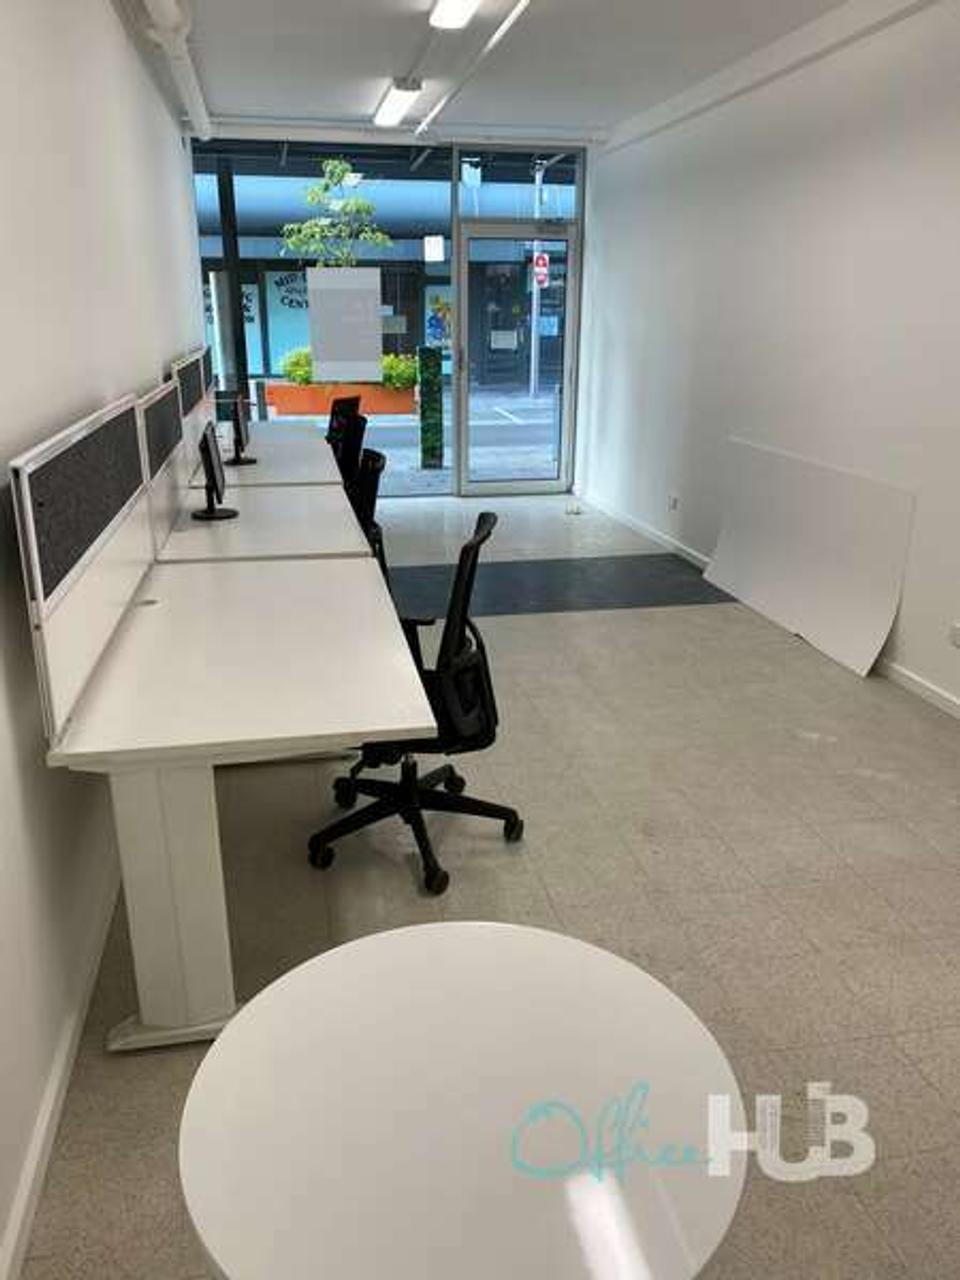 3 Person Private Office For Lease At Gheringap Street, Geelong, VIC, 3220 - image 3